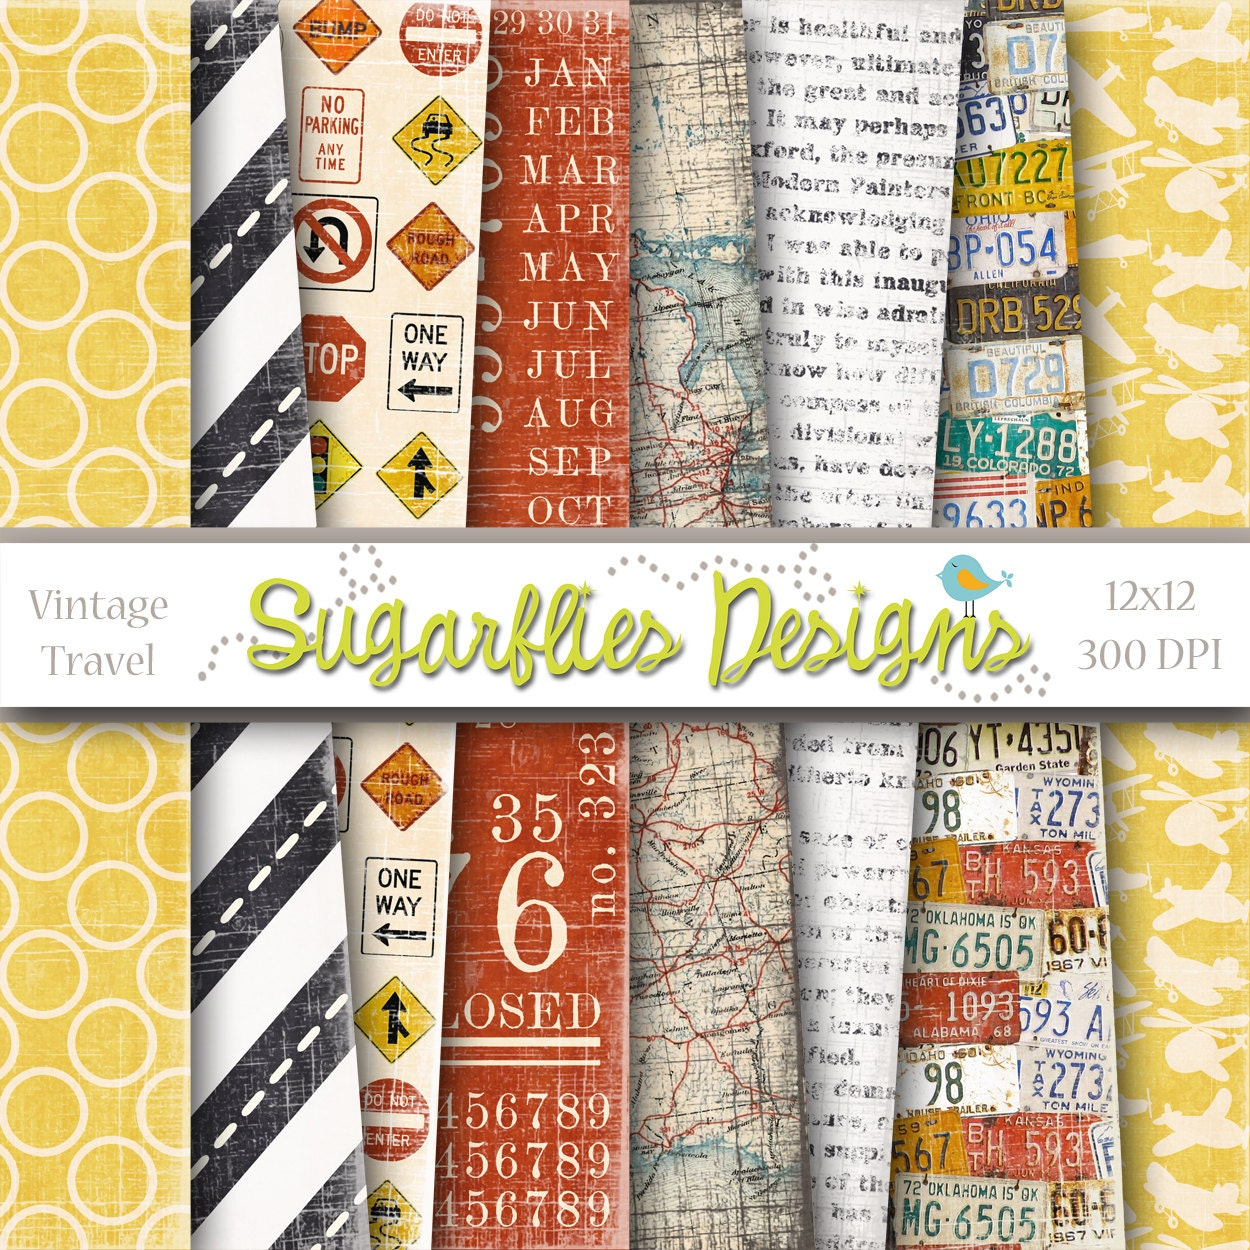 Vintage Travel Trailers: Digital Scrapbook Paper Packs VINTAGE TRAVEL